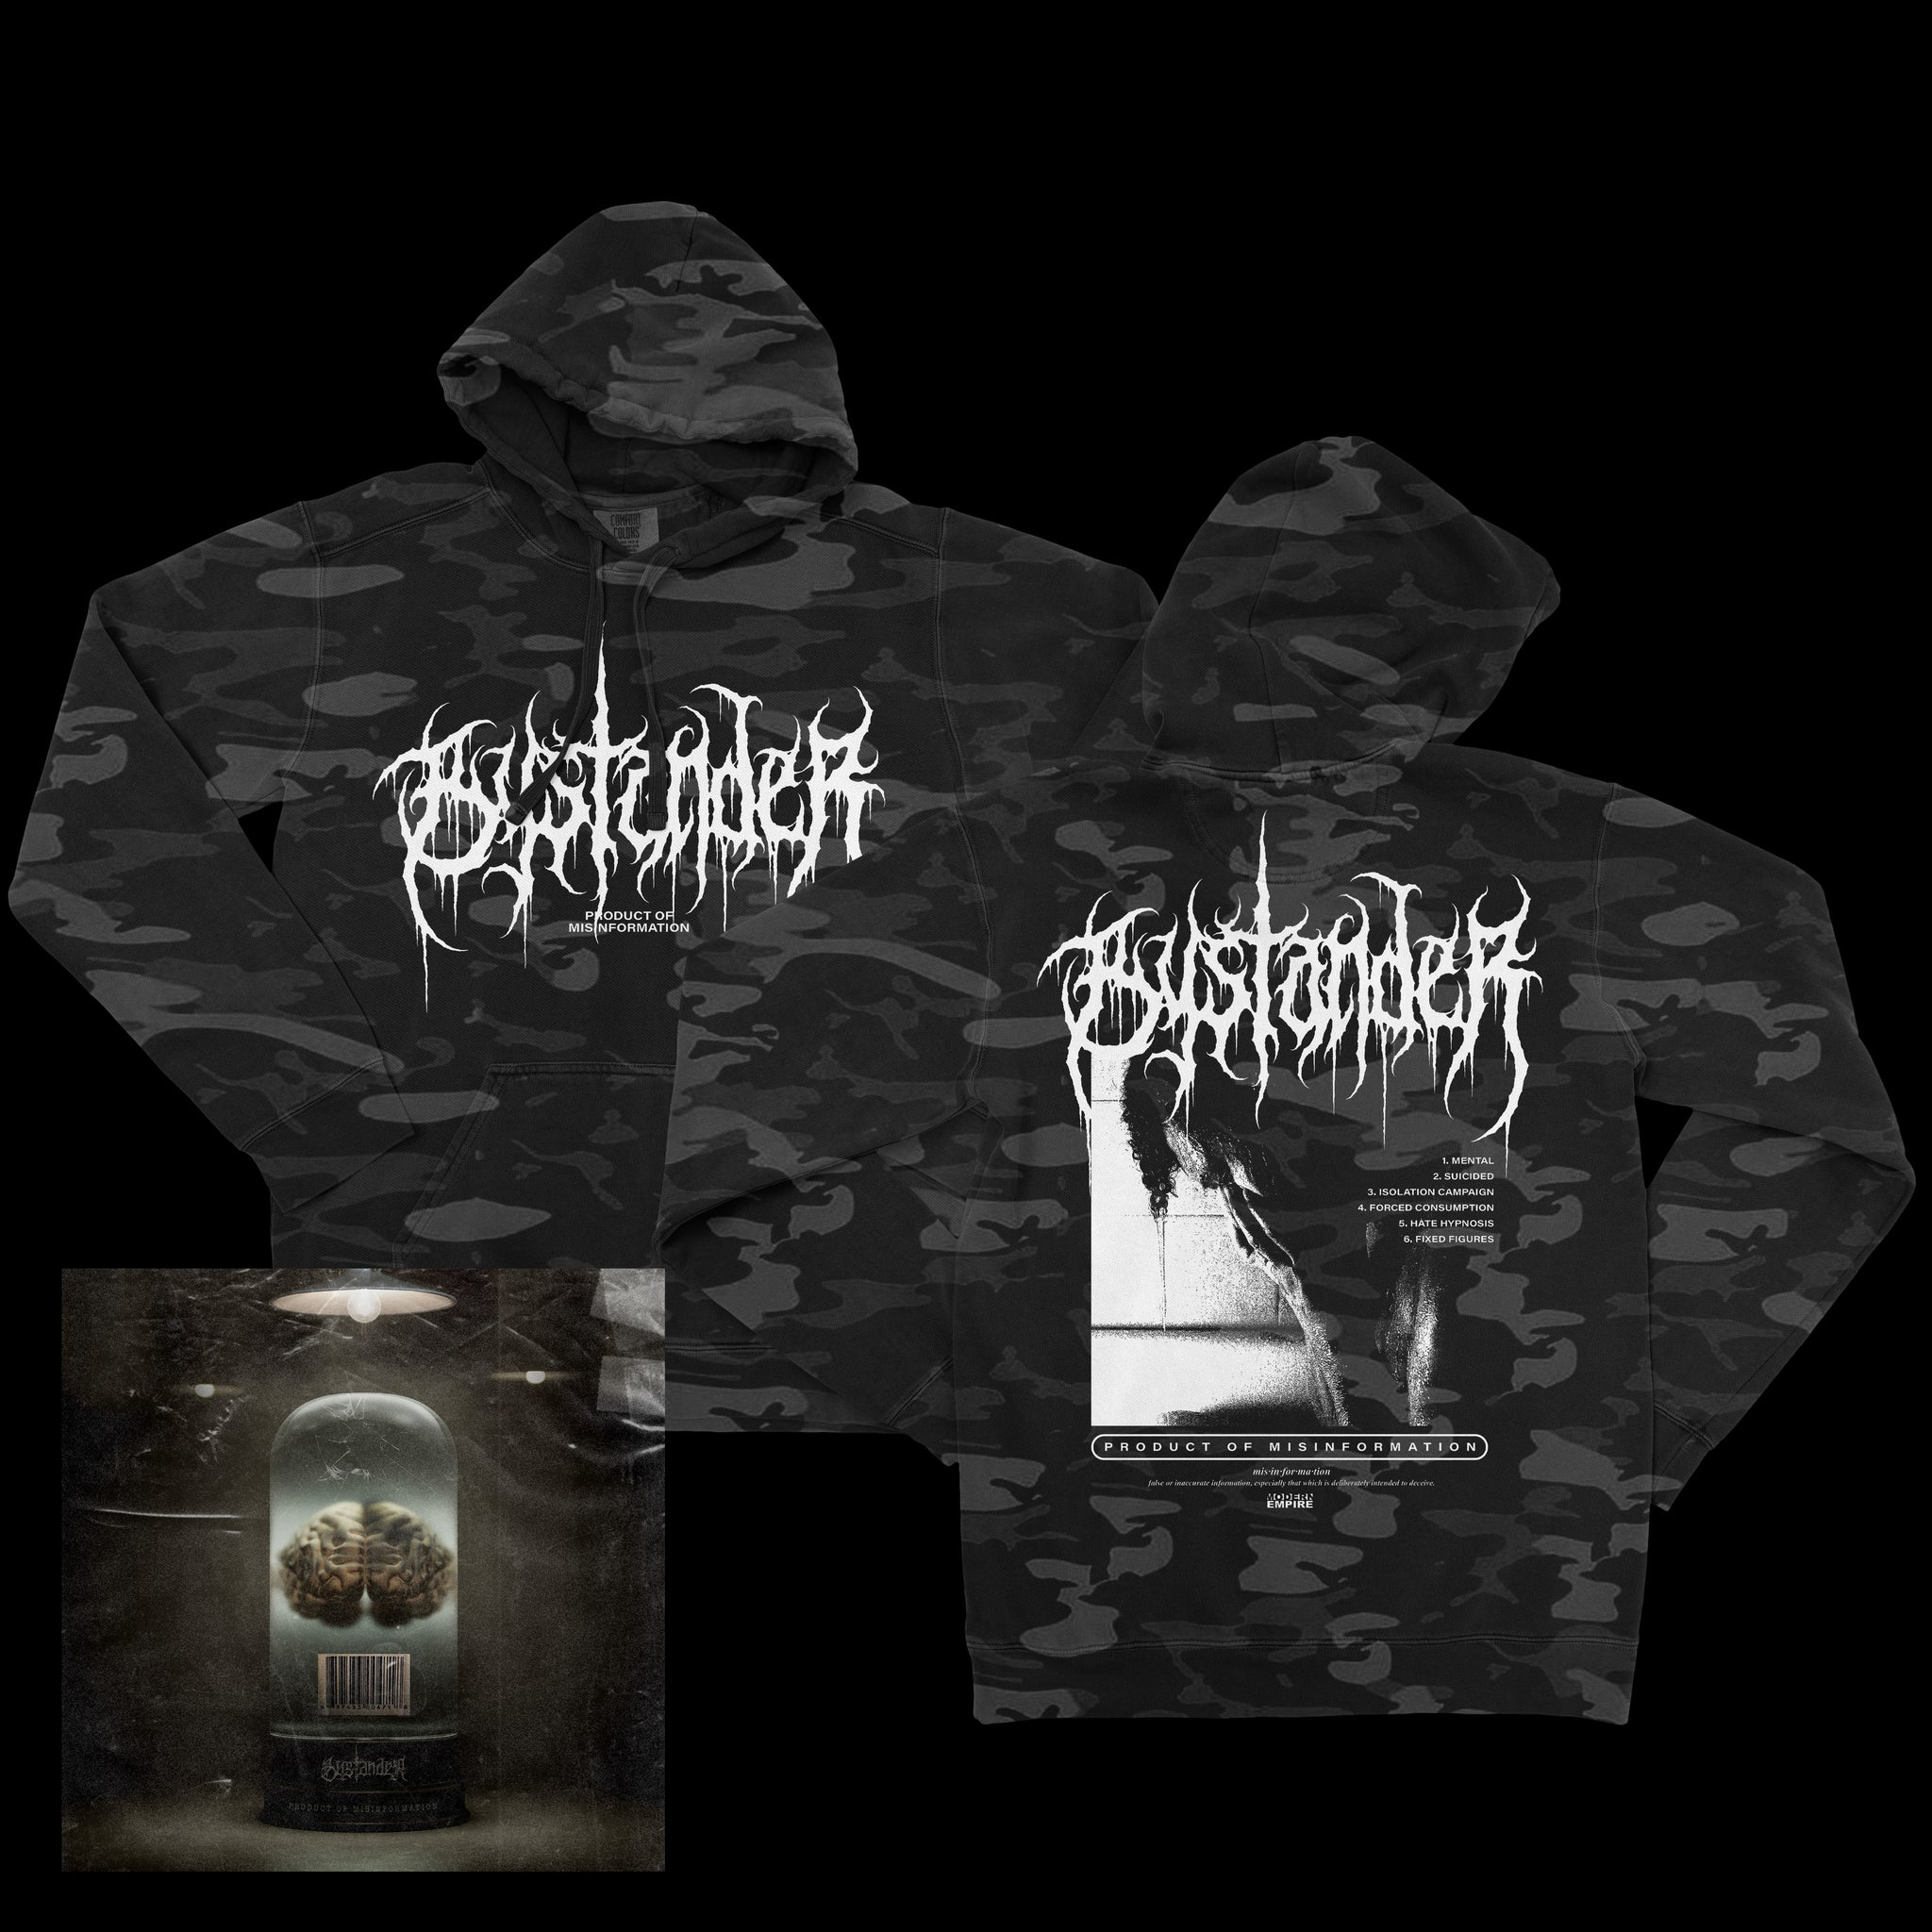 Bystander Limited Package 1 - Pre Order